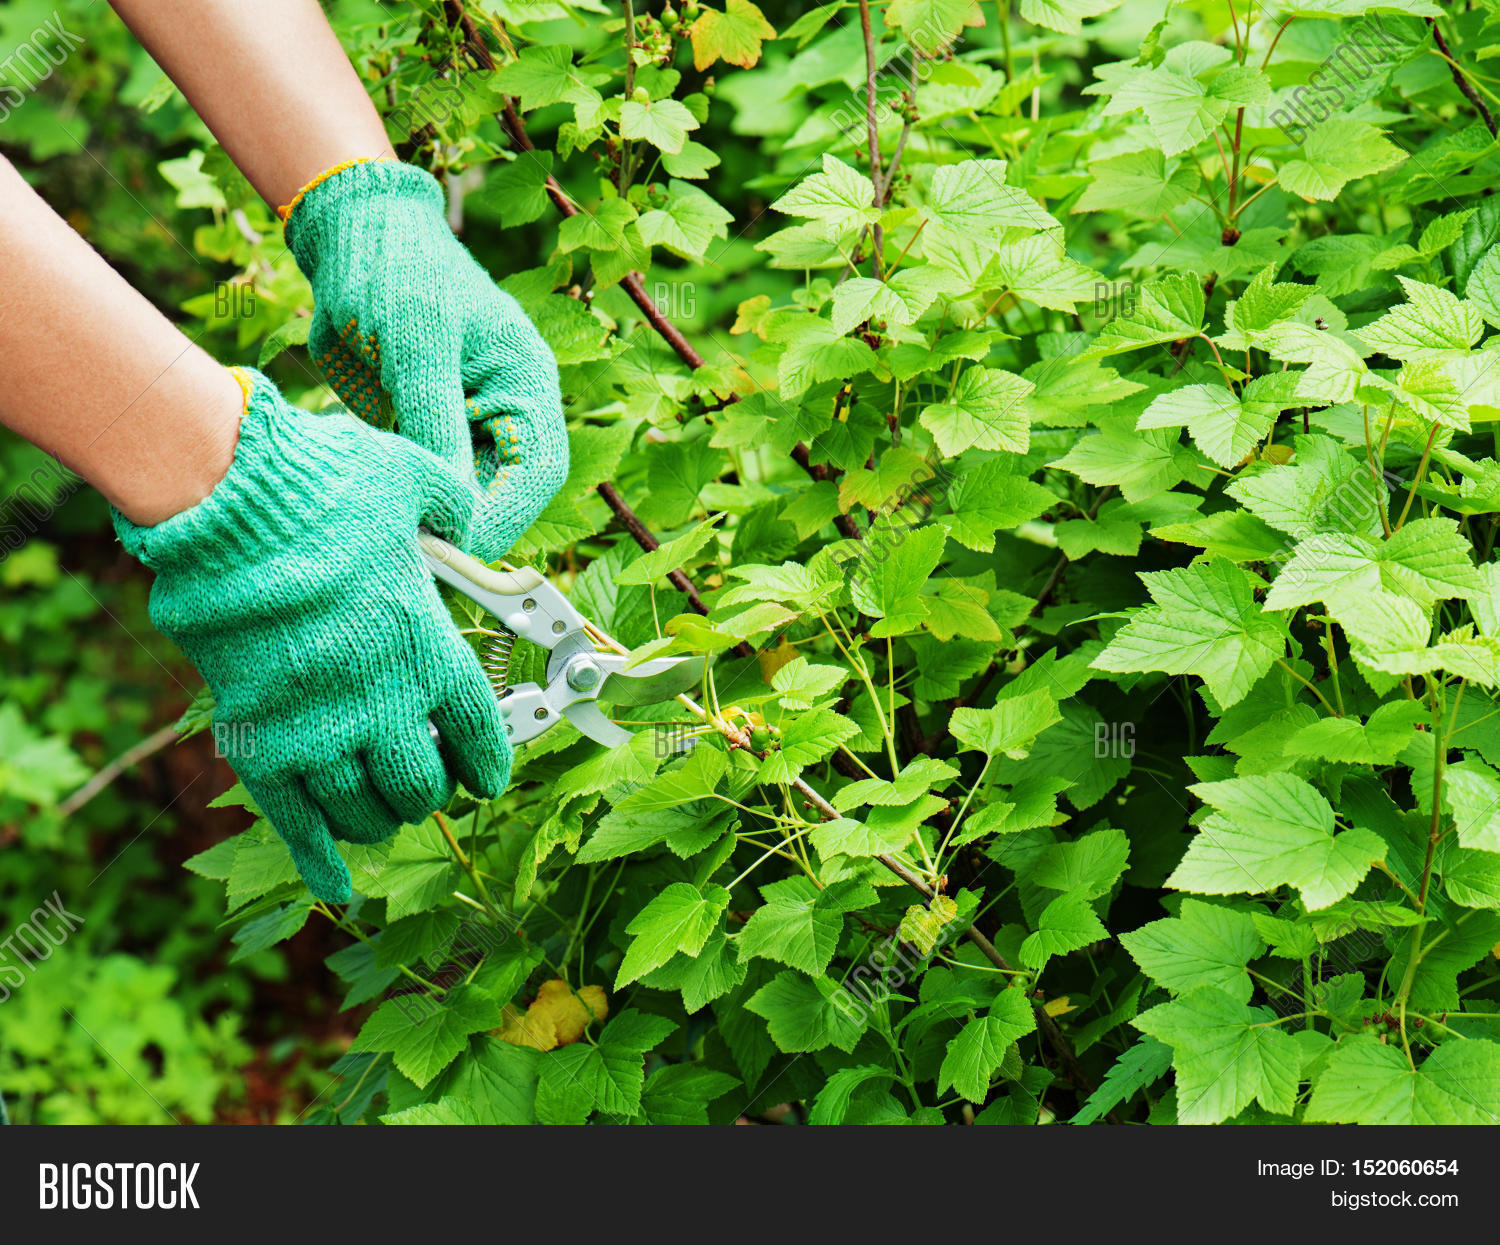 Hands garden pruner garden image photo bigstock for Big hands for gardening